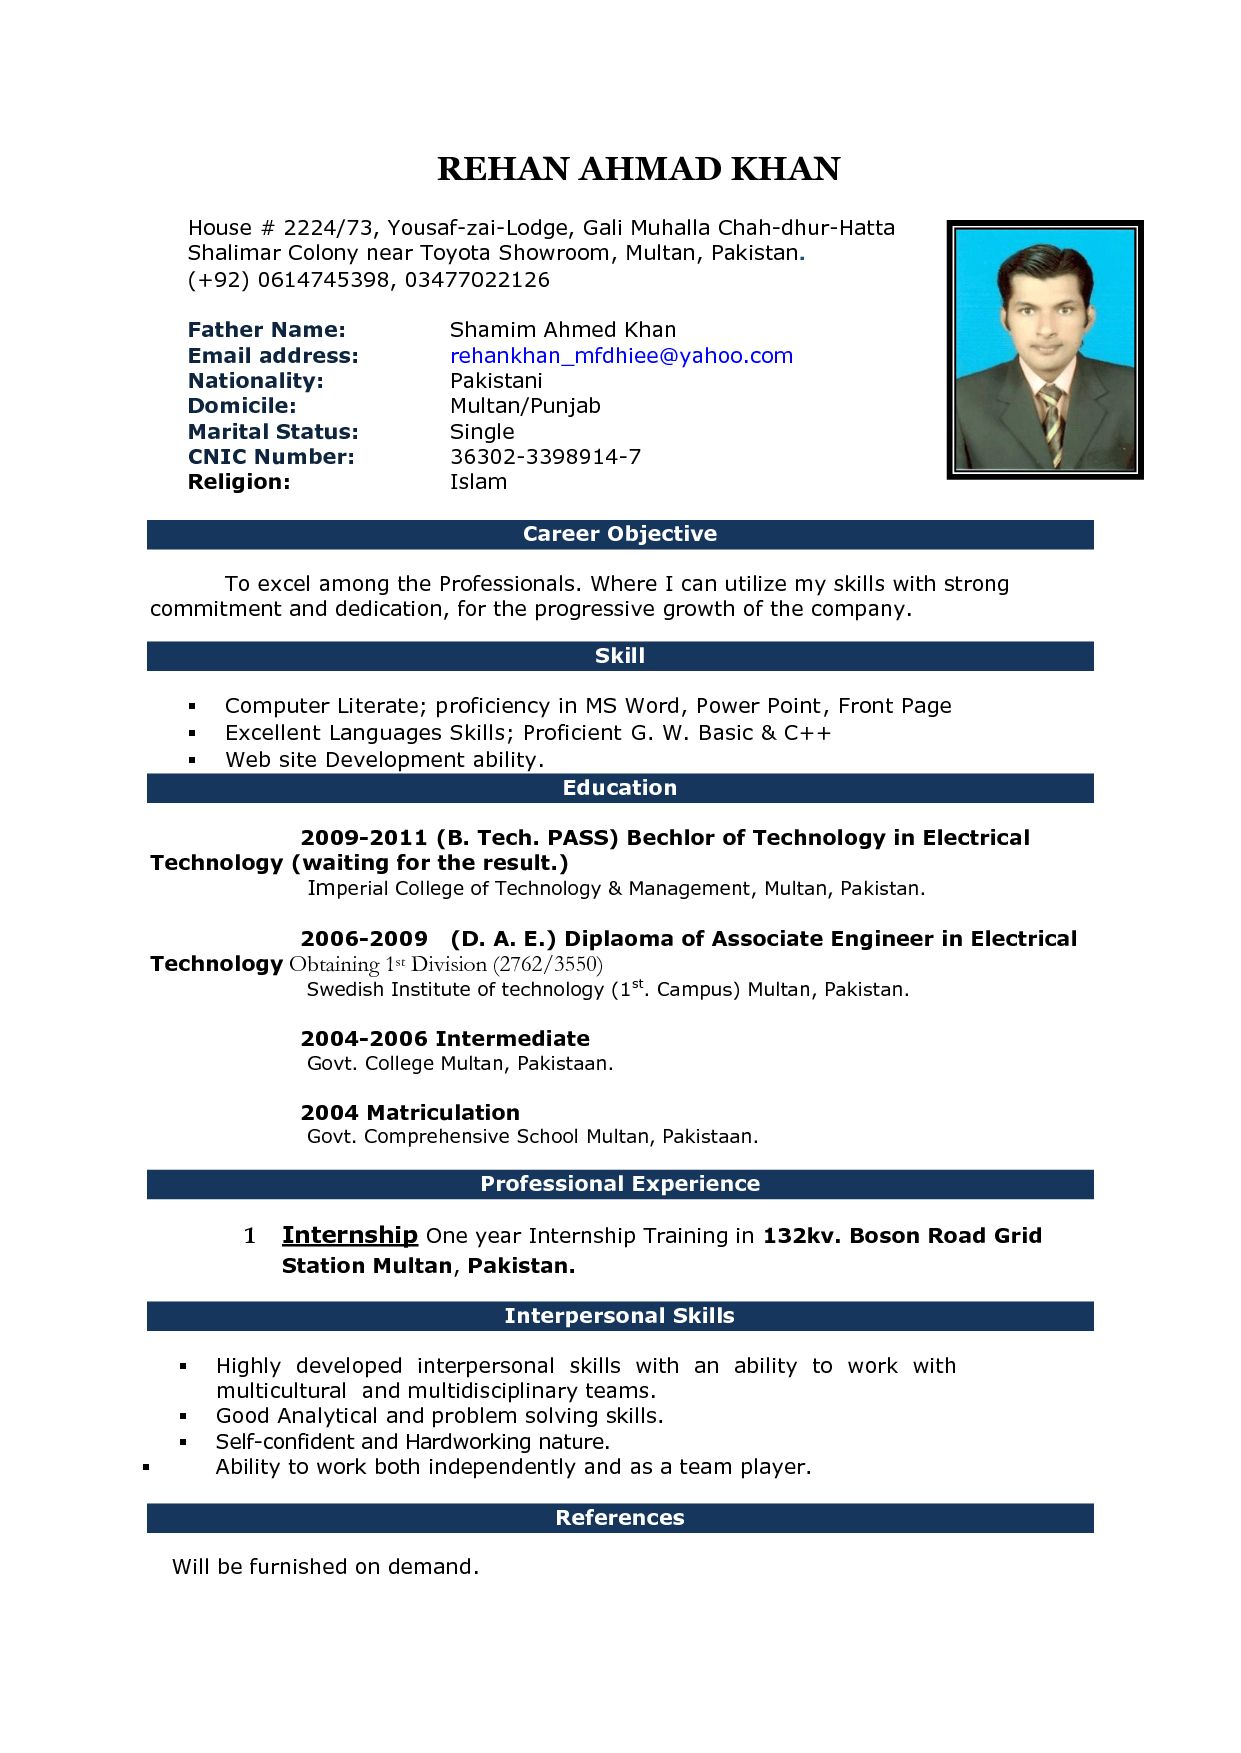 Resume Format In Microsoft Word Free Download Cv Format In Ms Word Fieldstationco Microsoft Office